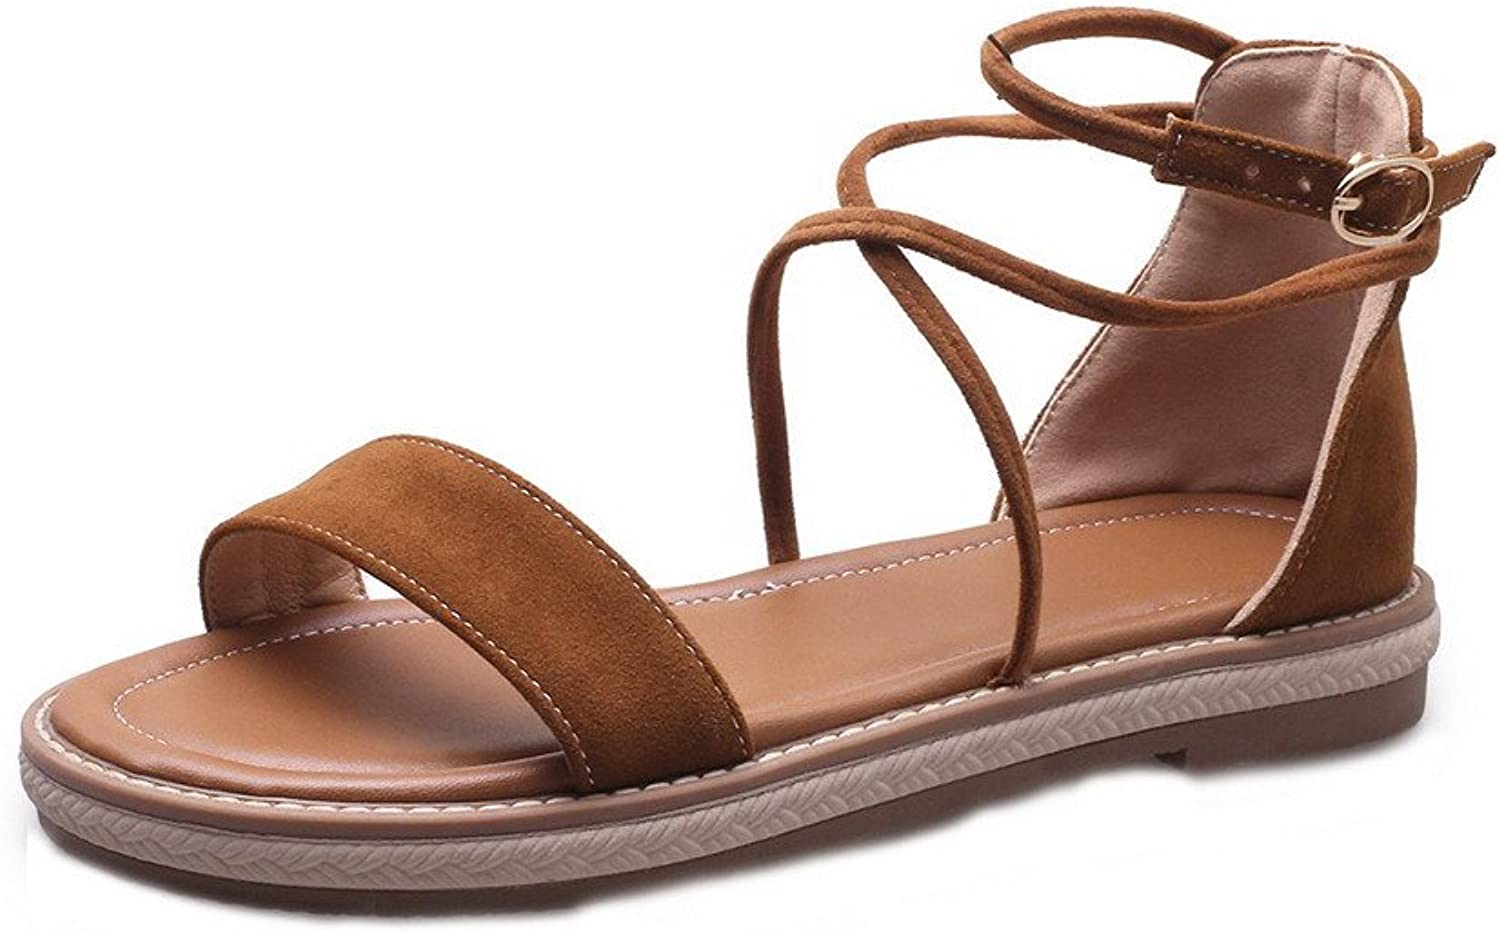 WeiPoot Women's Open-Toe Low-Heels Frosted Solid Buckle Sandals, EGHLH006811